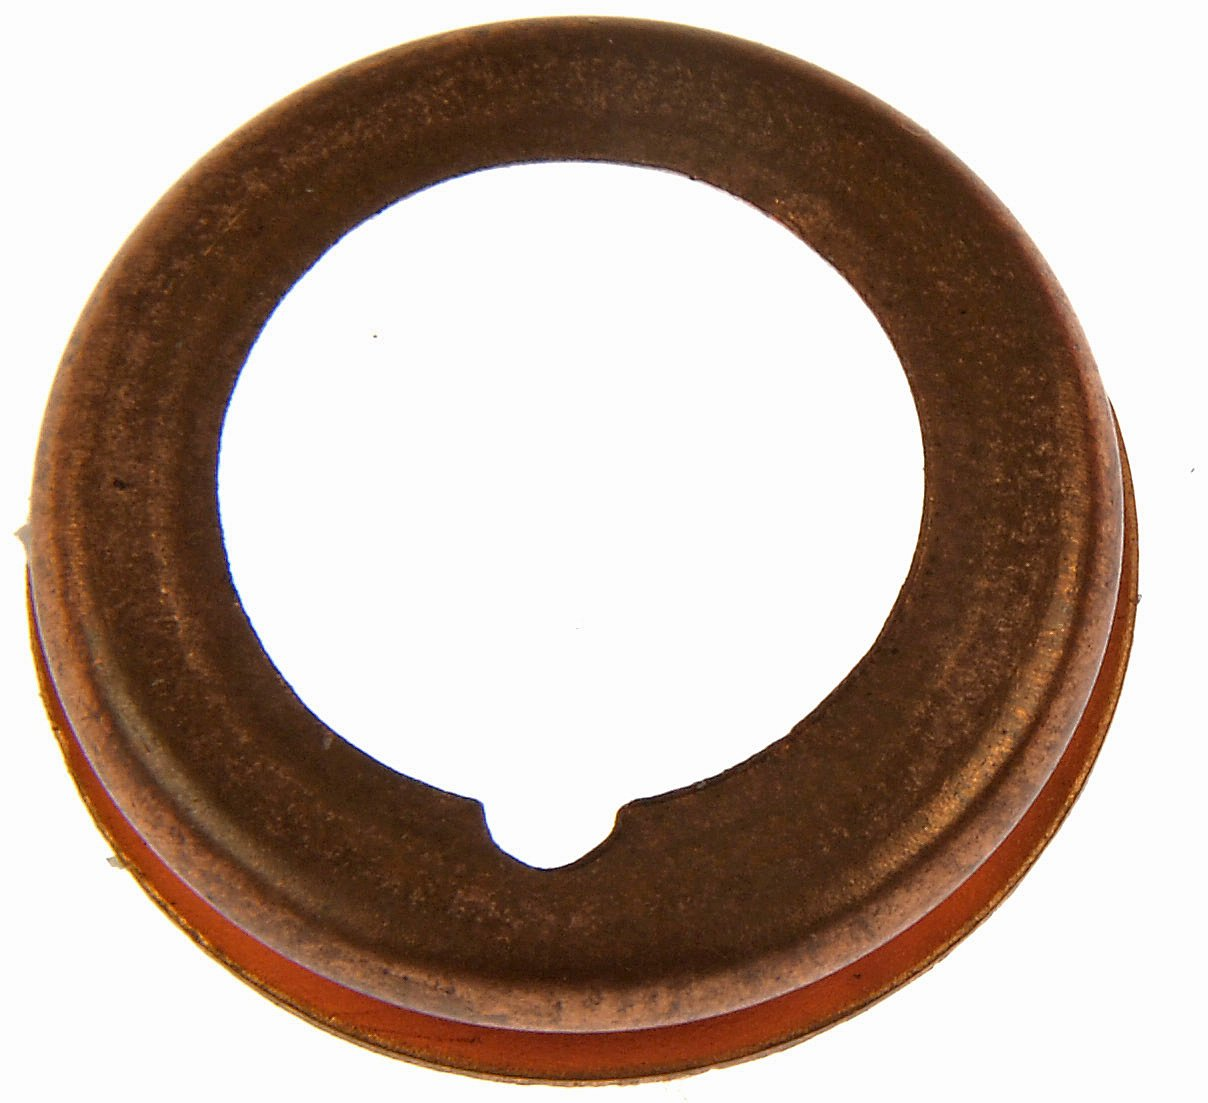 Dorman 097-134 Copper Oil Drain Plug Gasket - Fits M12, Pack of 10 Dorman - Autograde